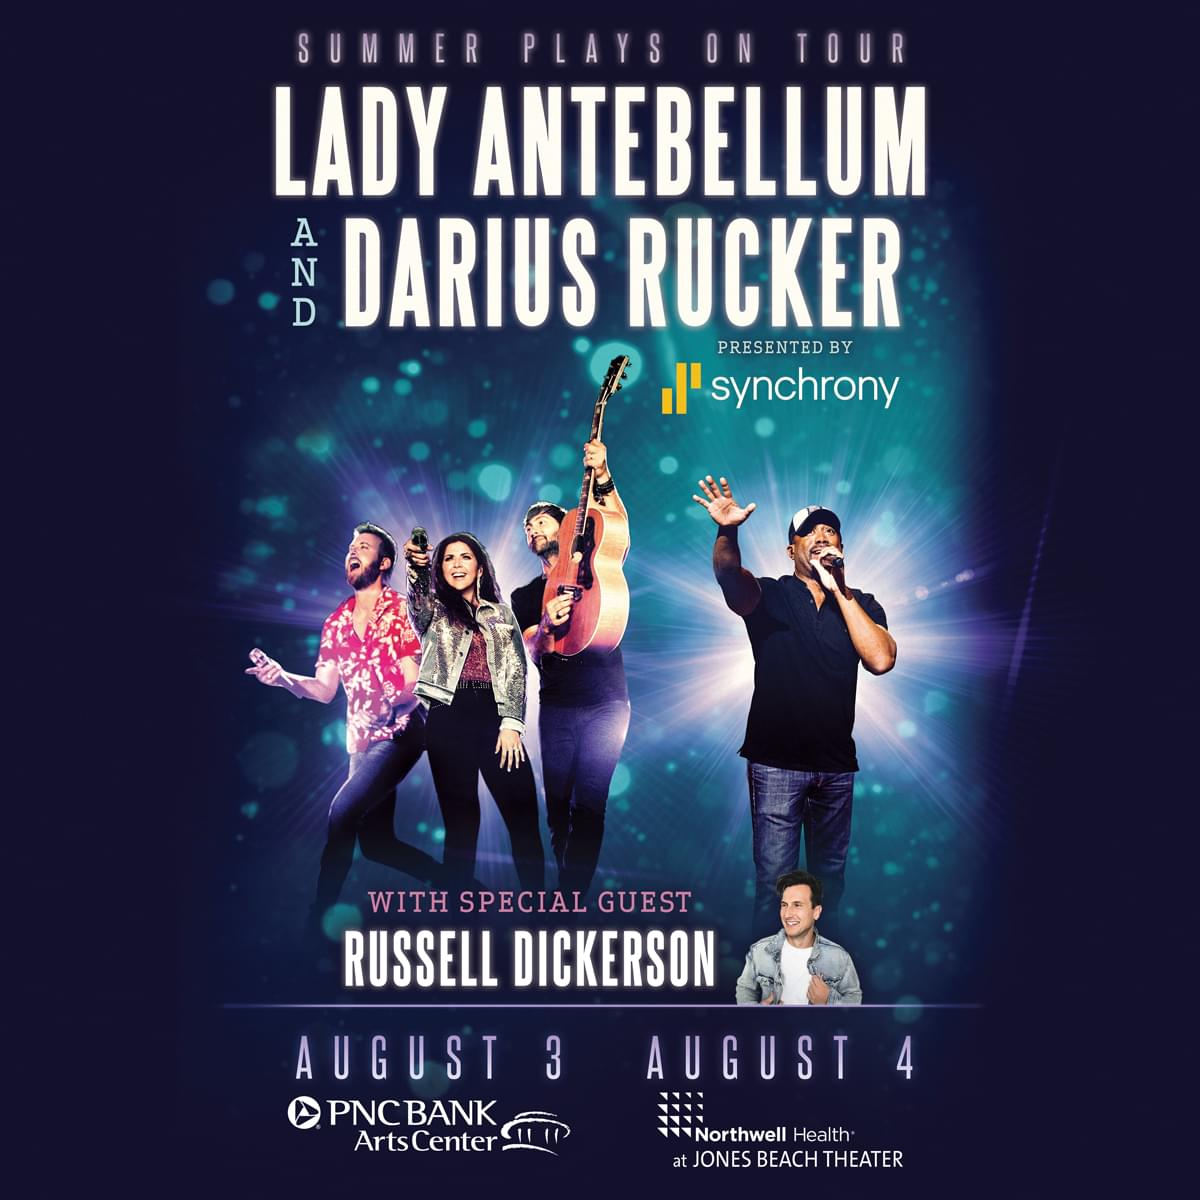 Win Tickets to See Lady Antebellum and Darius Rucker!